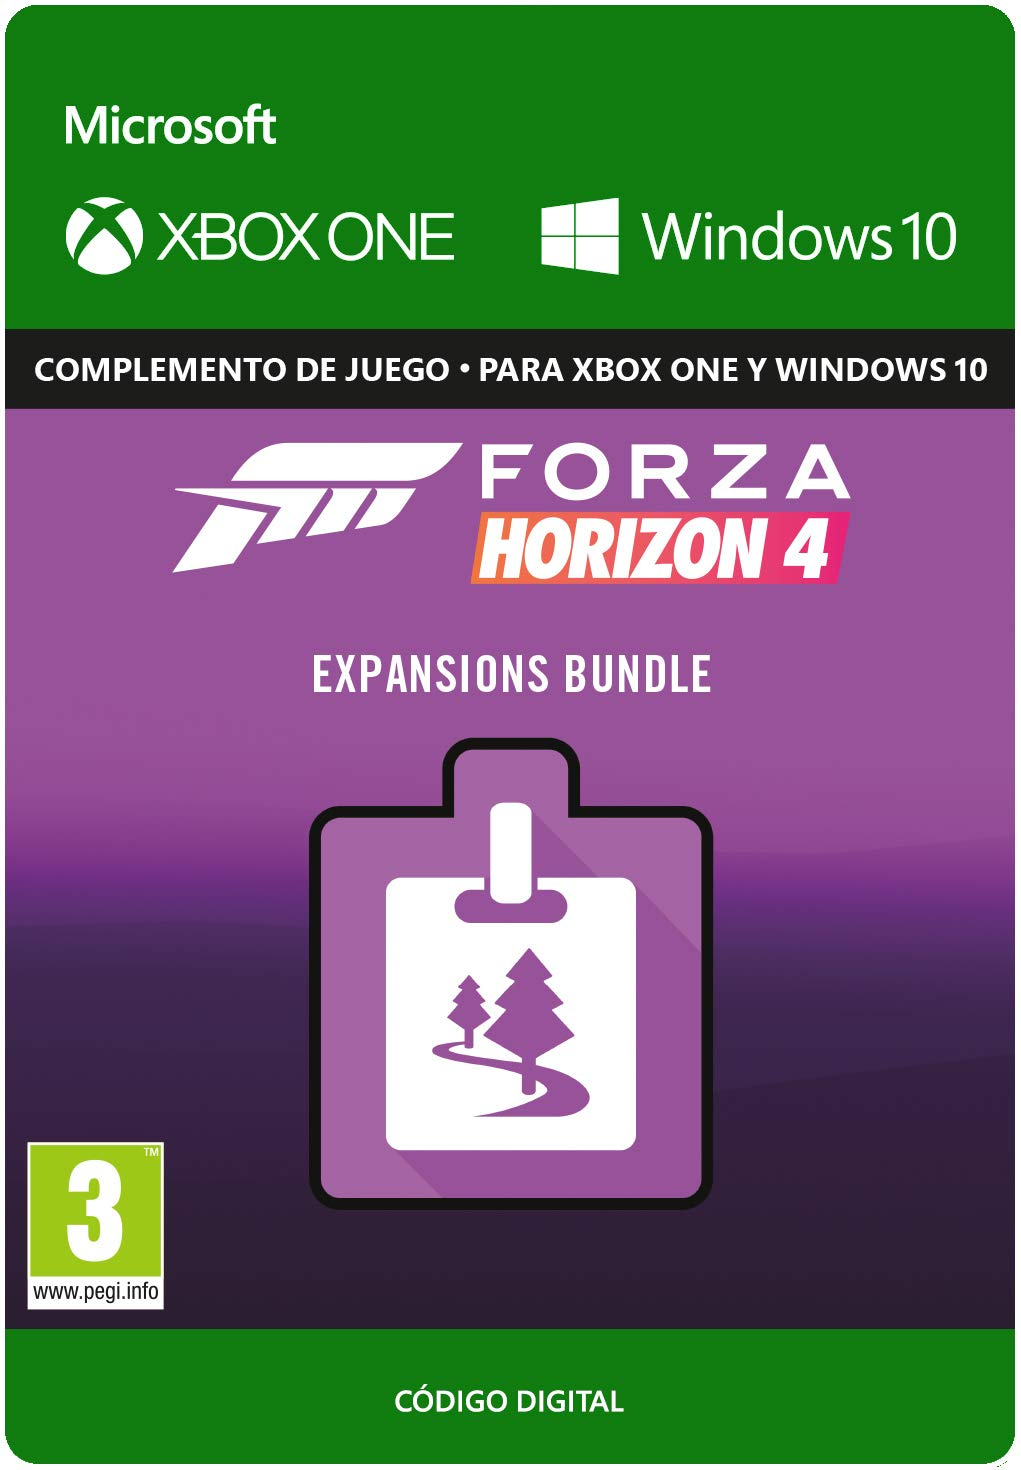 Forza Horizon 4: Expansions Bundle | Xbox One/Win 10 PC – Download Code